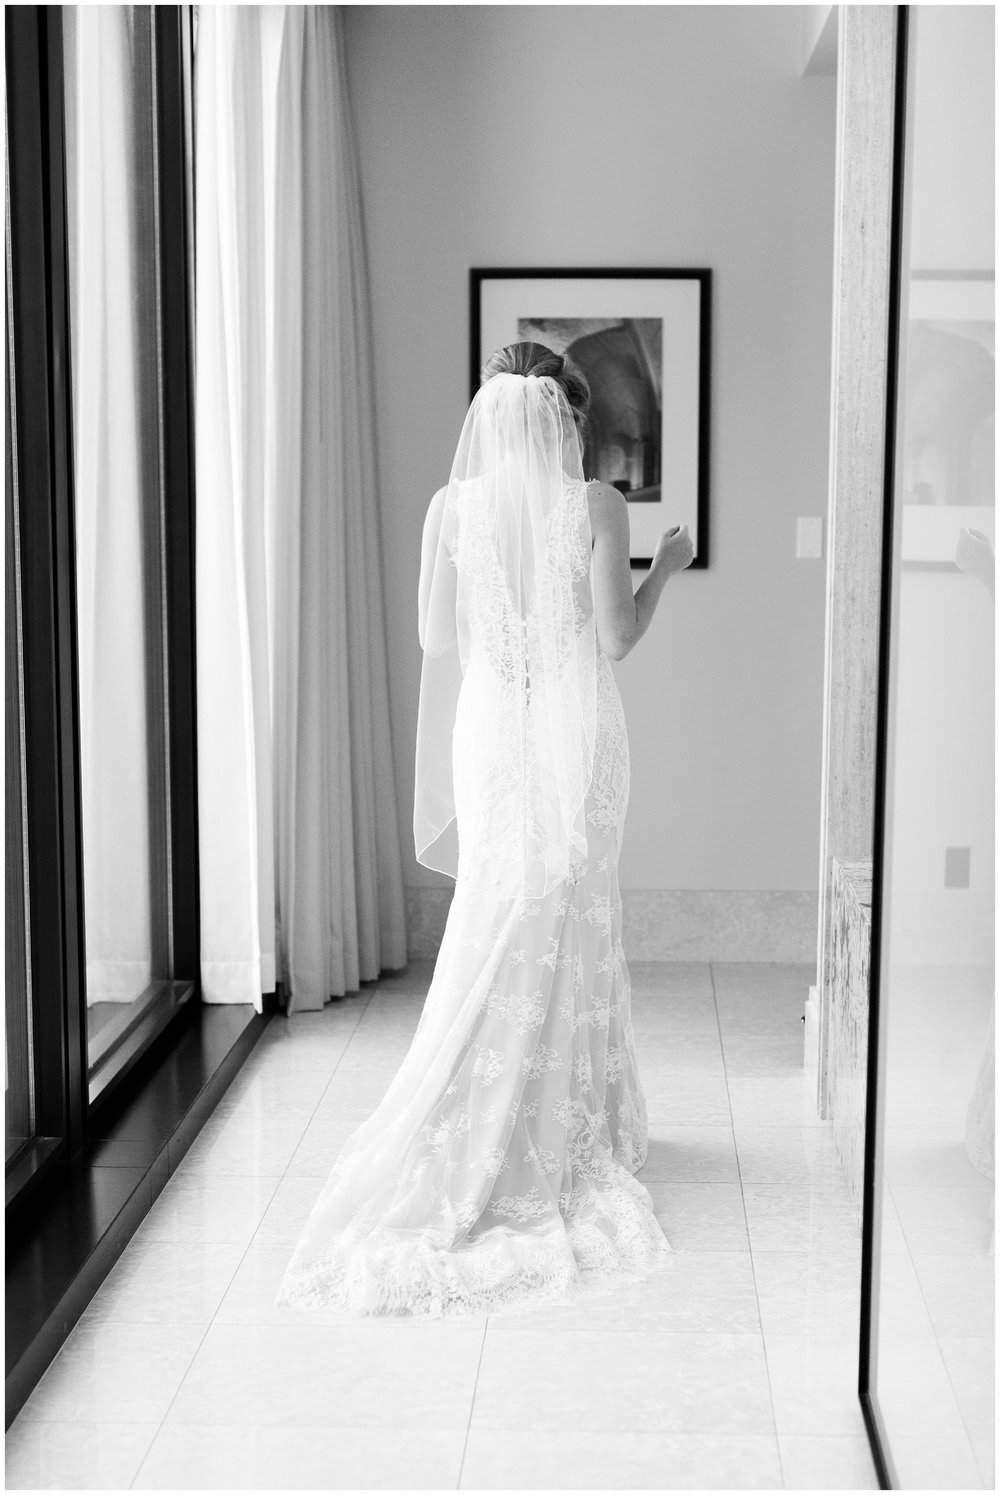 RebeccaHaleyPhotography_Denverweddingphotographer_Denverbride_coloradobride_chicagobride_chicagowedding_tribunetowerwedding_chicagoweddingphotographer_0025.jpg